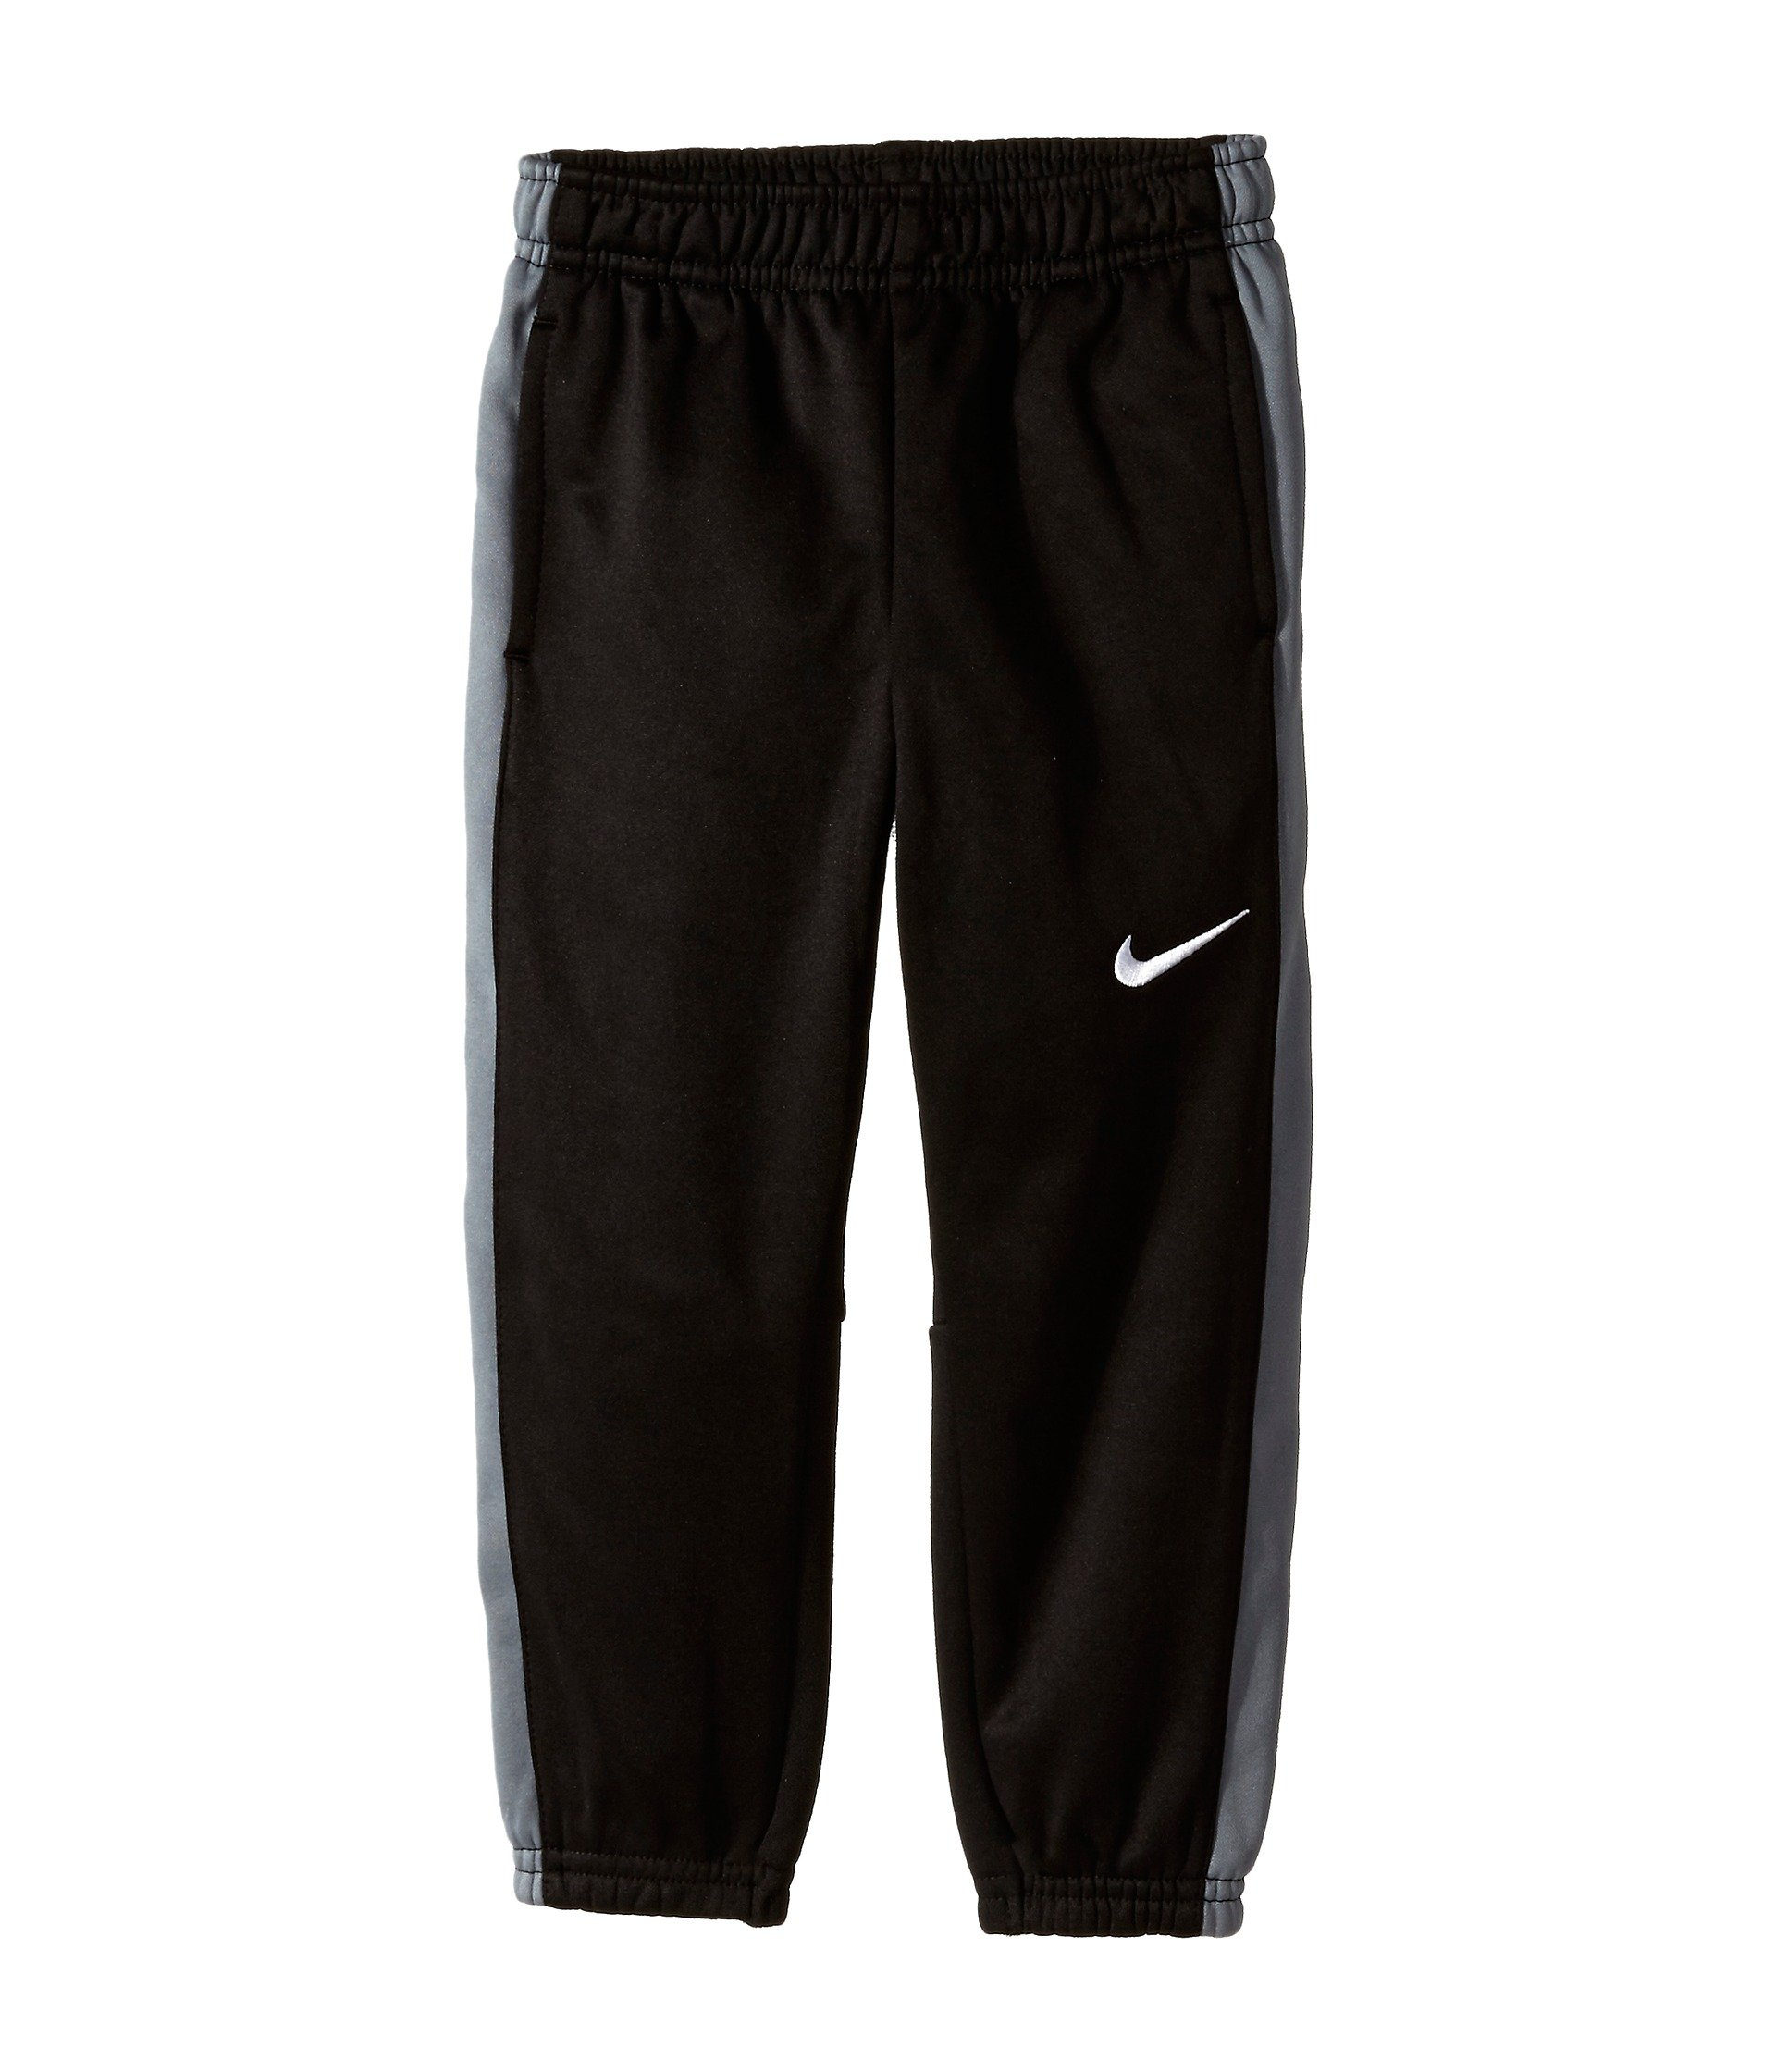 Nike Kids Boys' Fleece Cuff Pants (Little Kids), Black/Grey, 4 X One Size